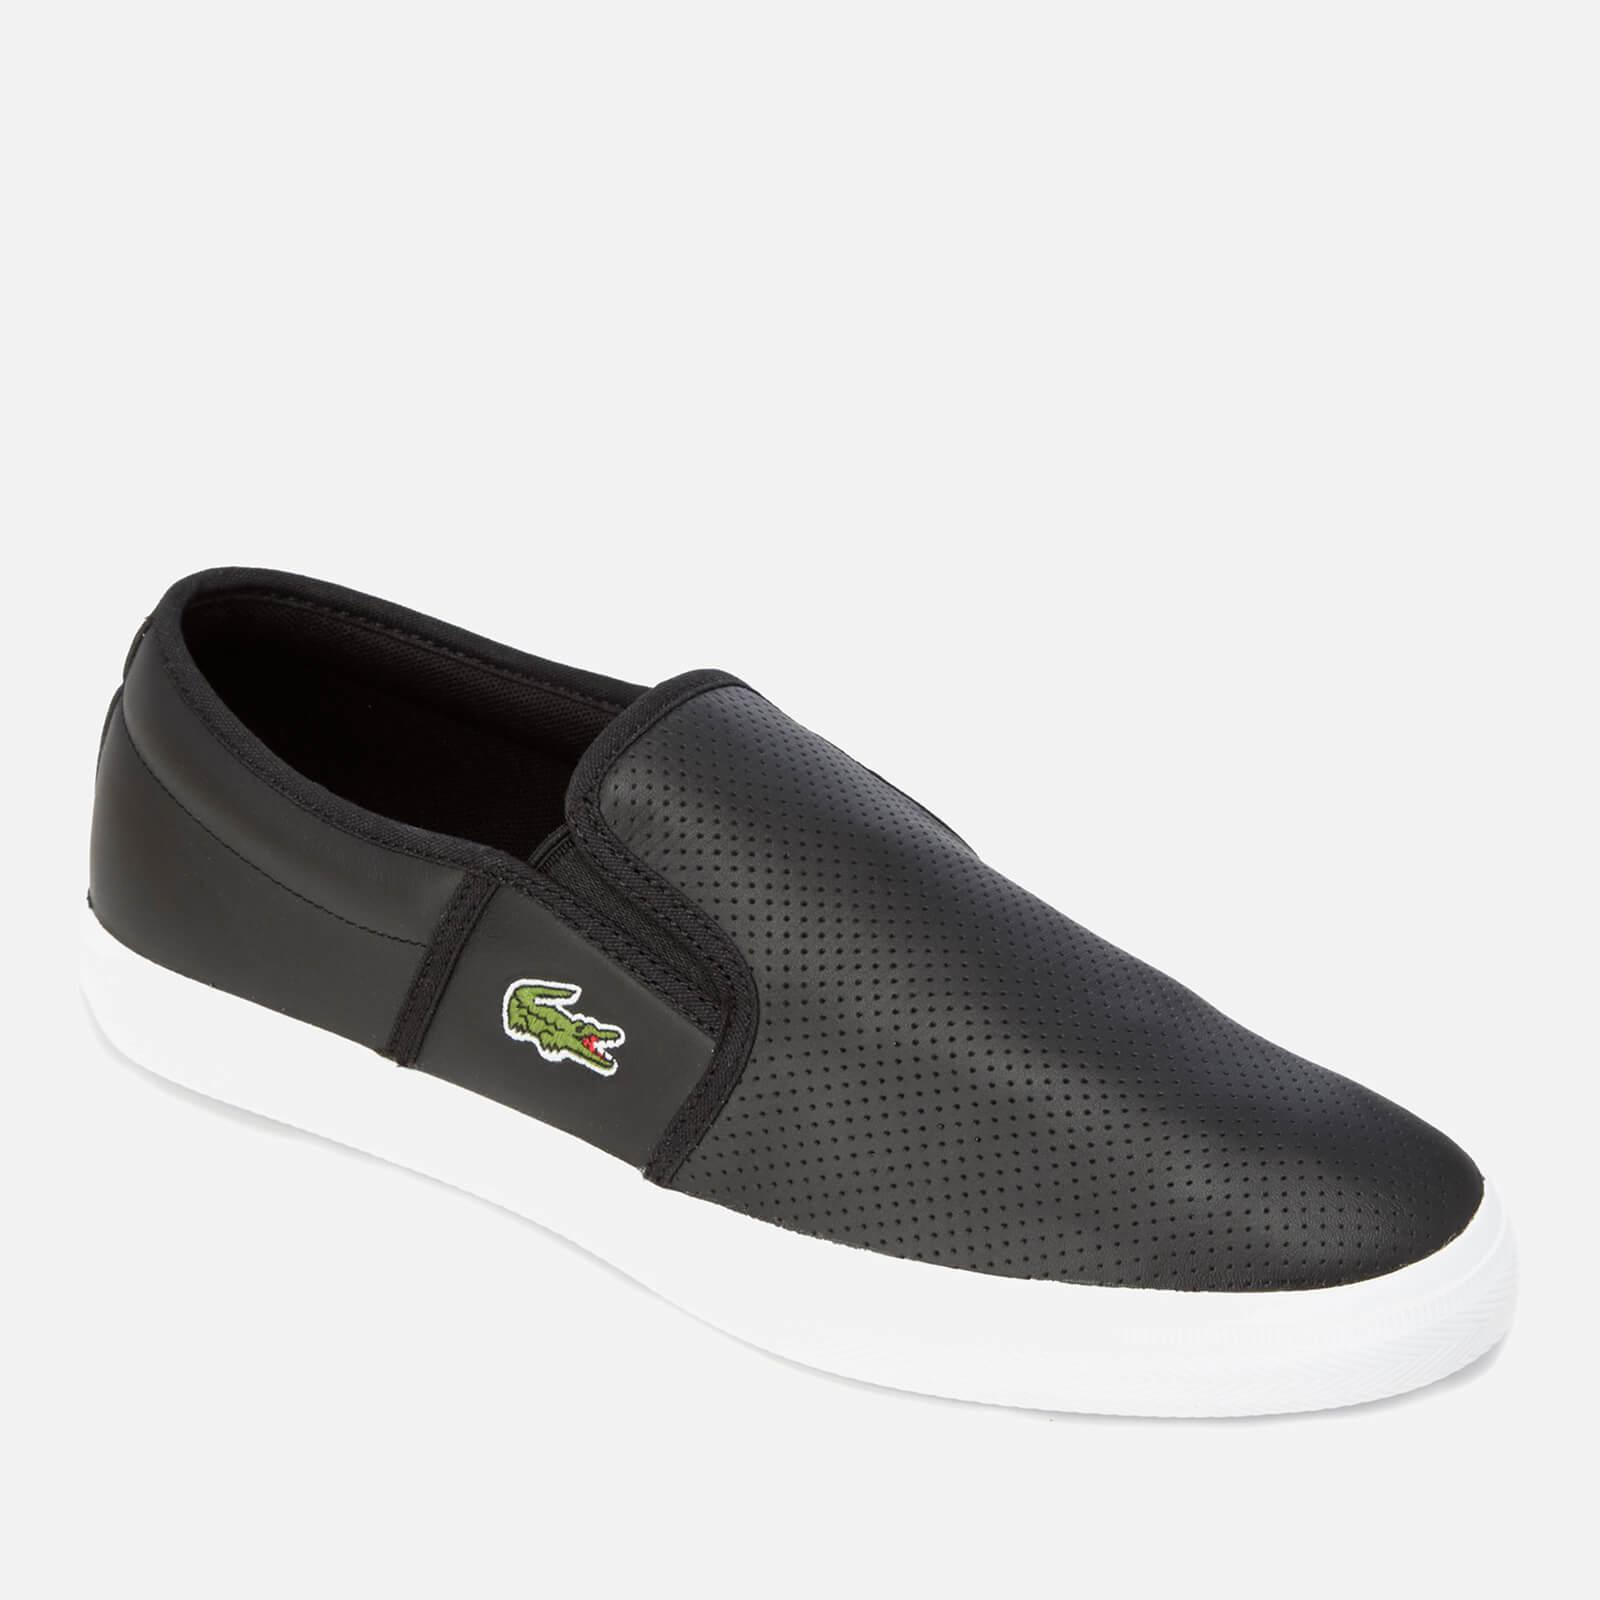 be89247c35e34 Lacoste - Black Gazon Bl 1 Leather Slip-on Trainers for Men - Lyst. View  fullscreen